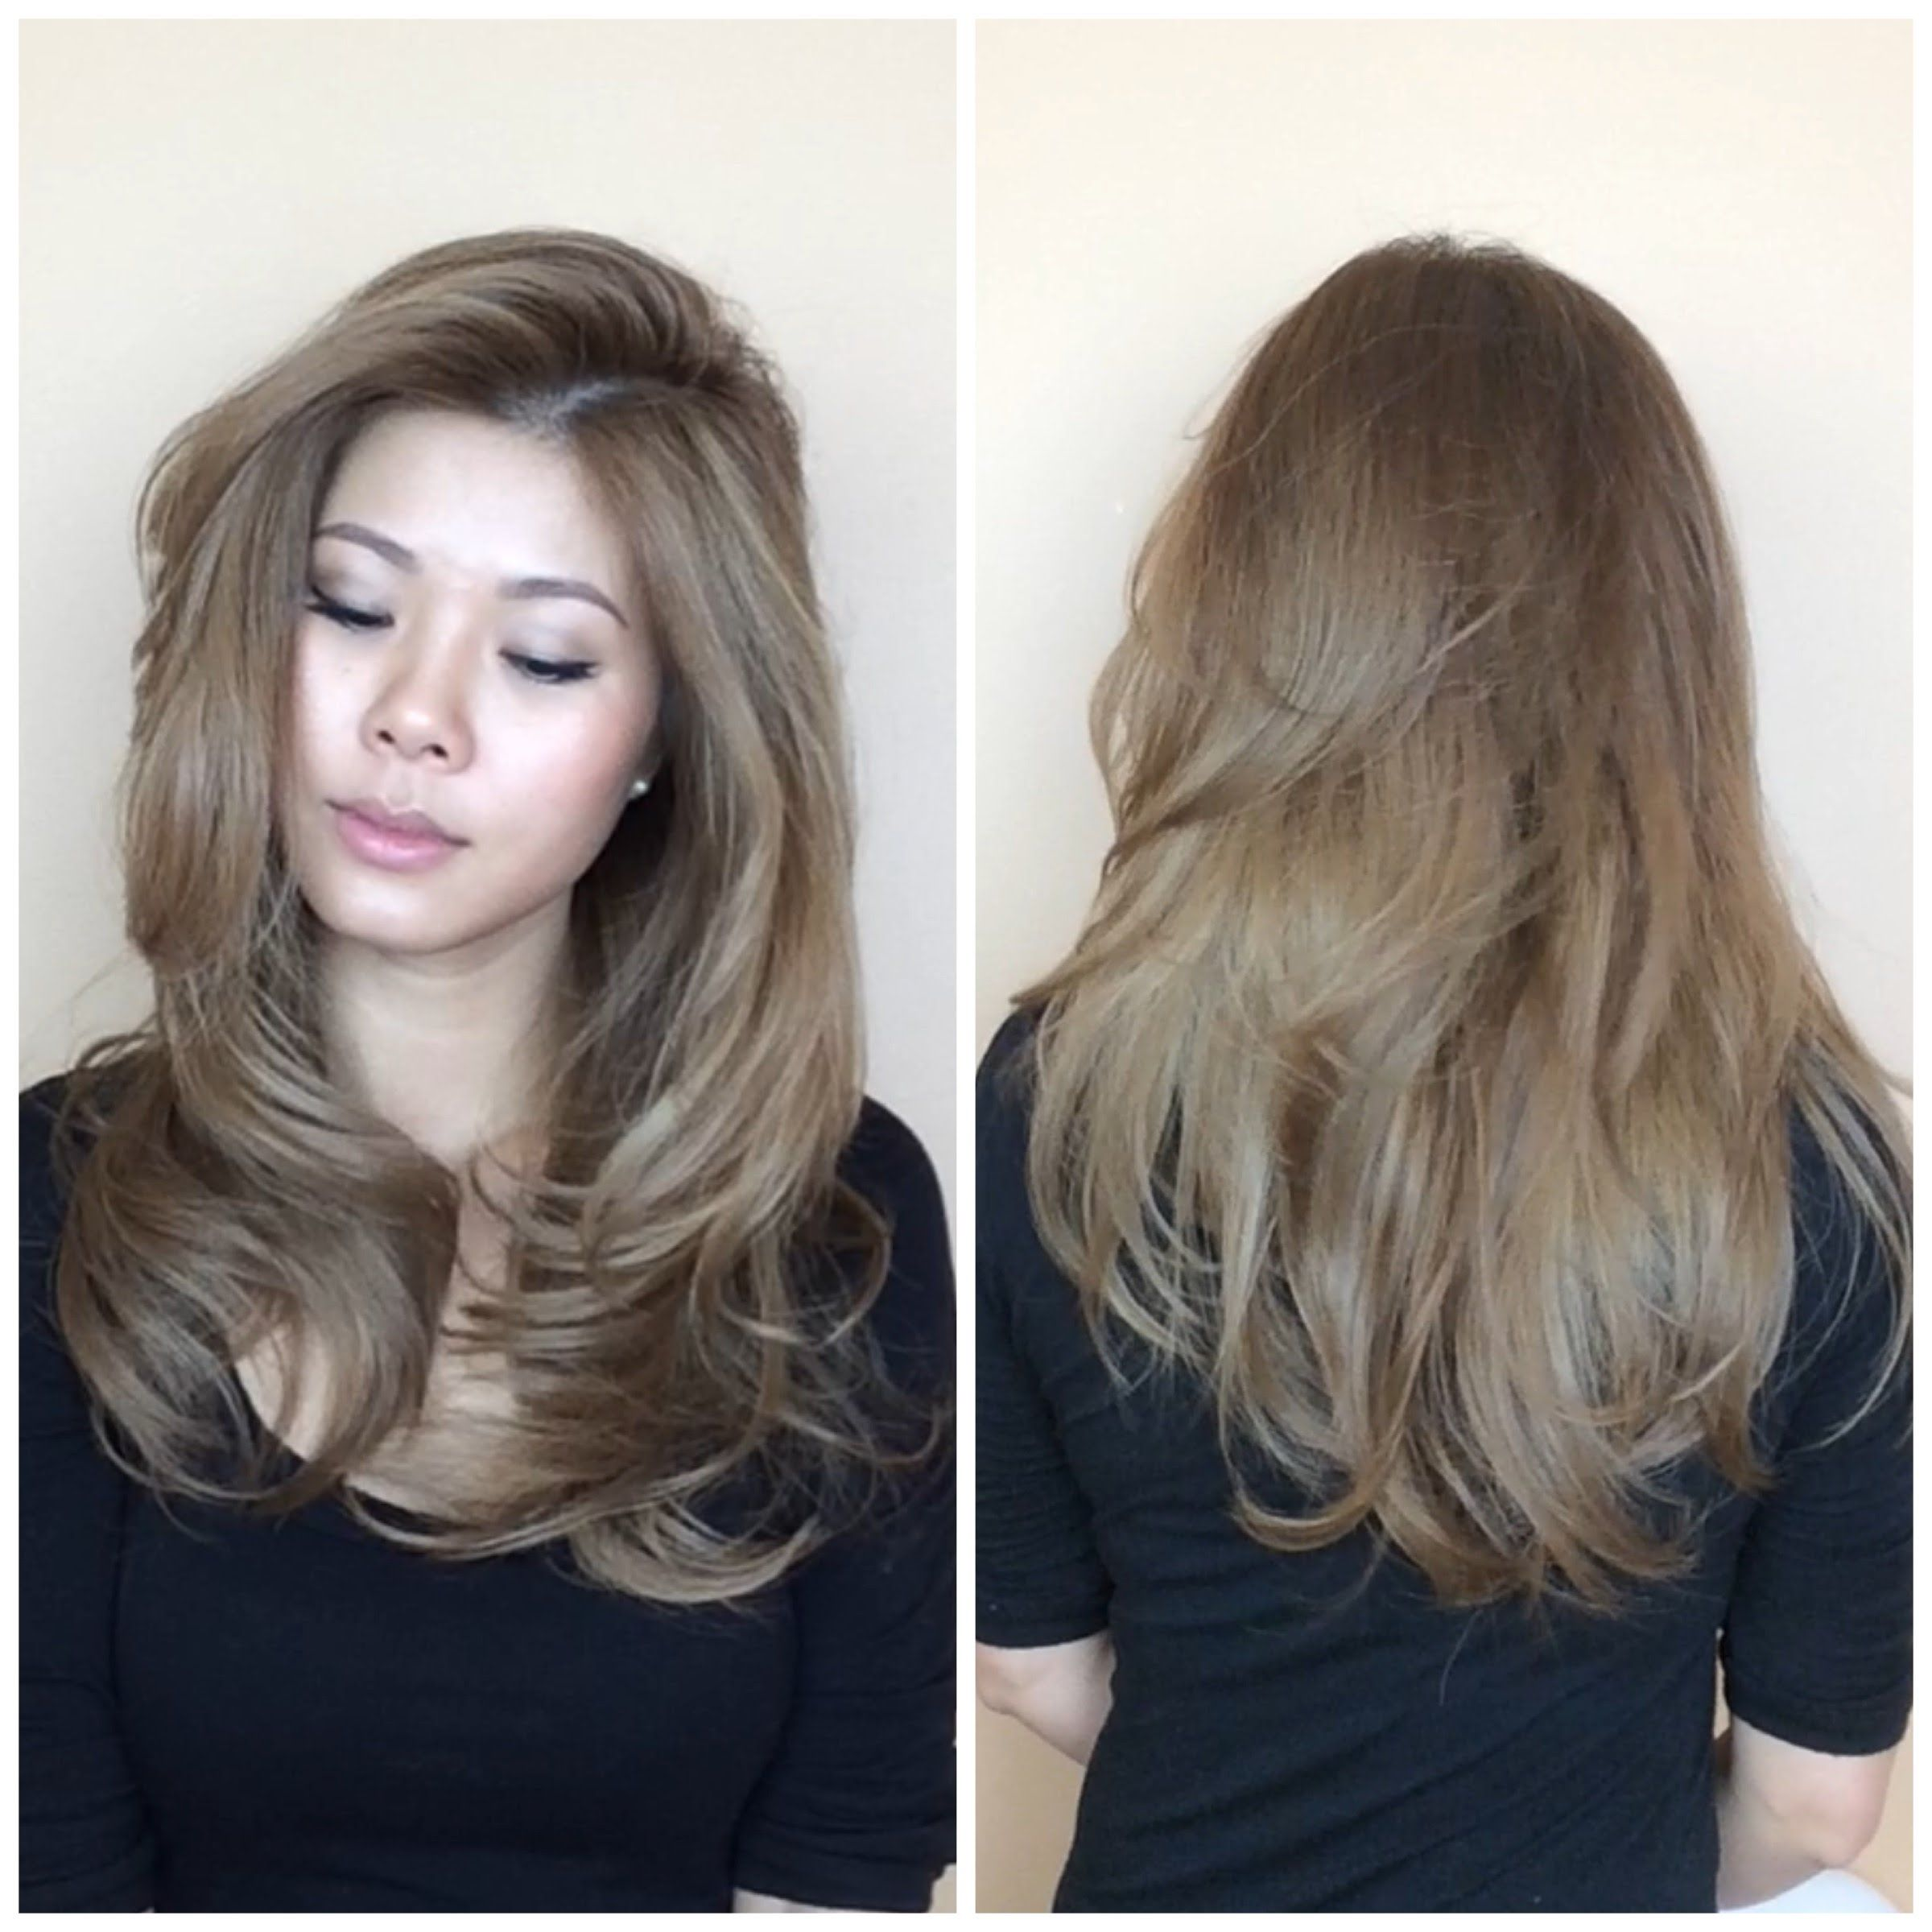 Pin By Rachel Carpino On Extreme Vol Blowout Blow Dry Hair Dry Curly Hair Blow Hair